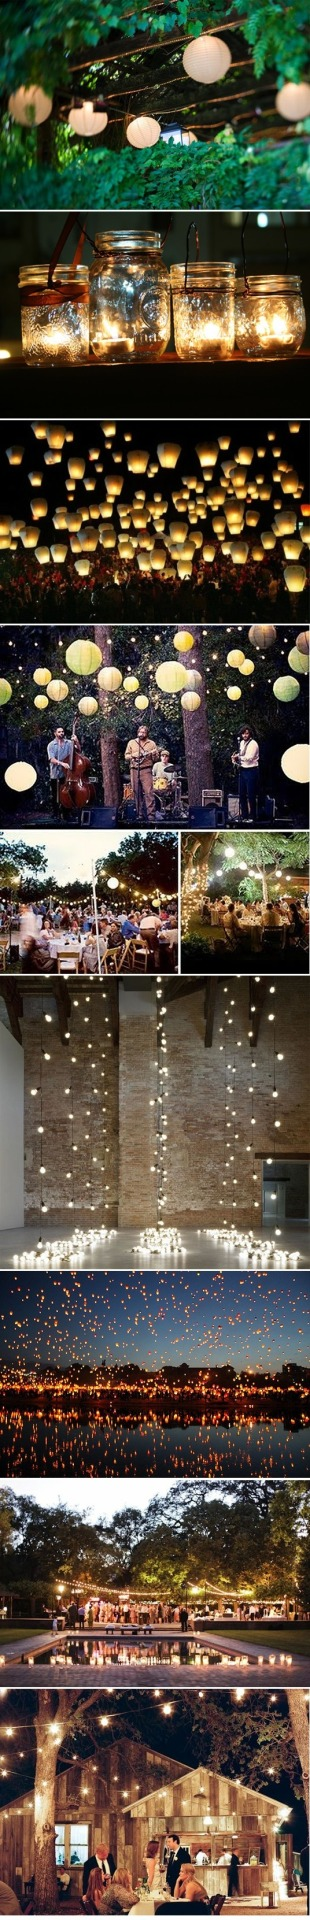 vintagestilettobrides:  Light inspiration for your wedding, reception or party! I LOVE lanterns and fairy lights! See more beautiful events inspiration at vsb!